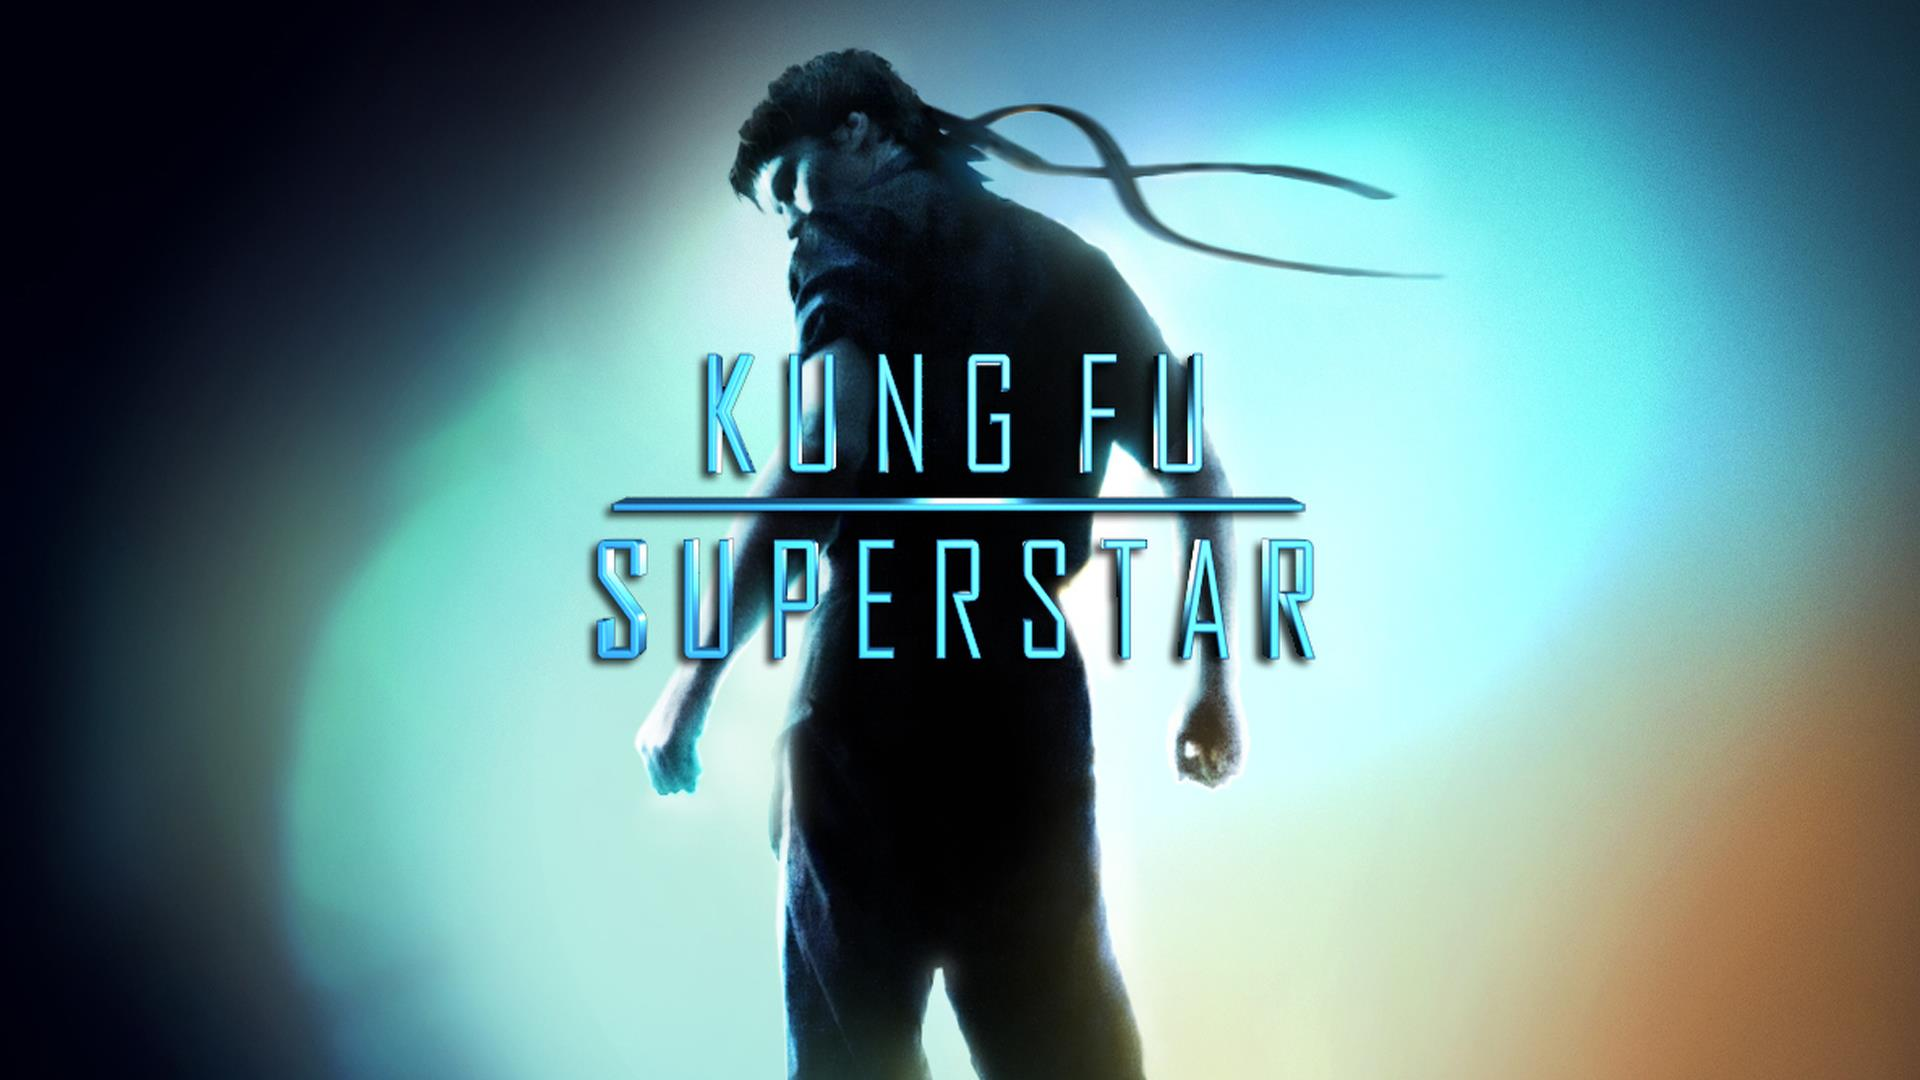 Kung Fu Superstar Hd Wallpaper Background Image 1920x1080 Id